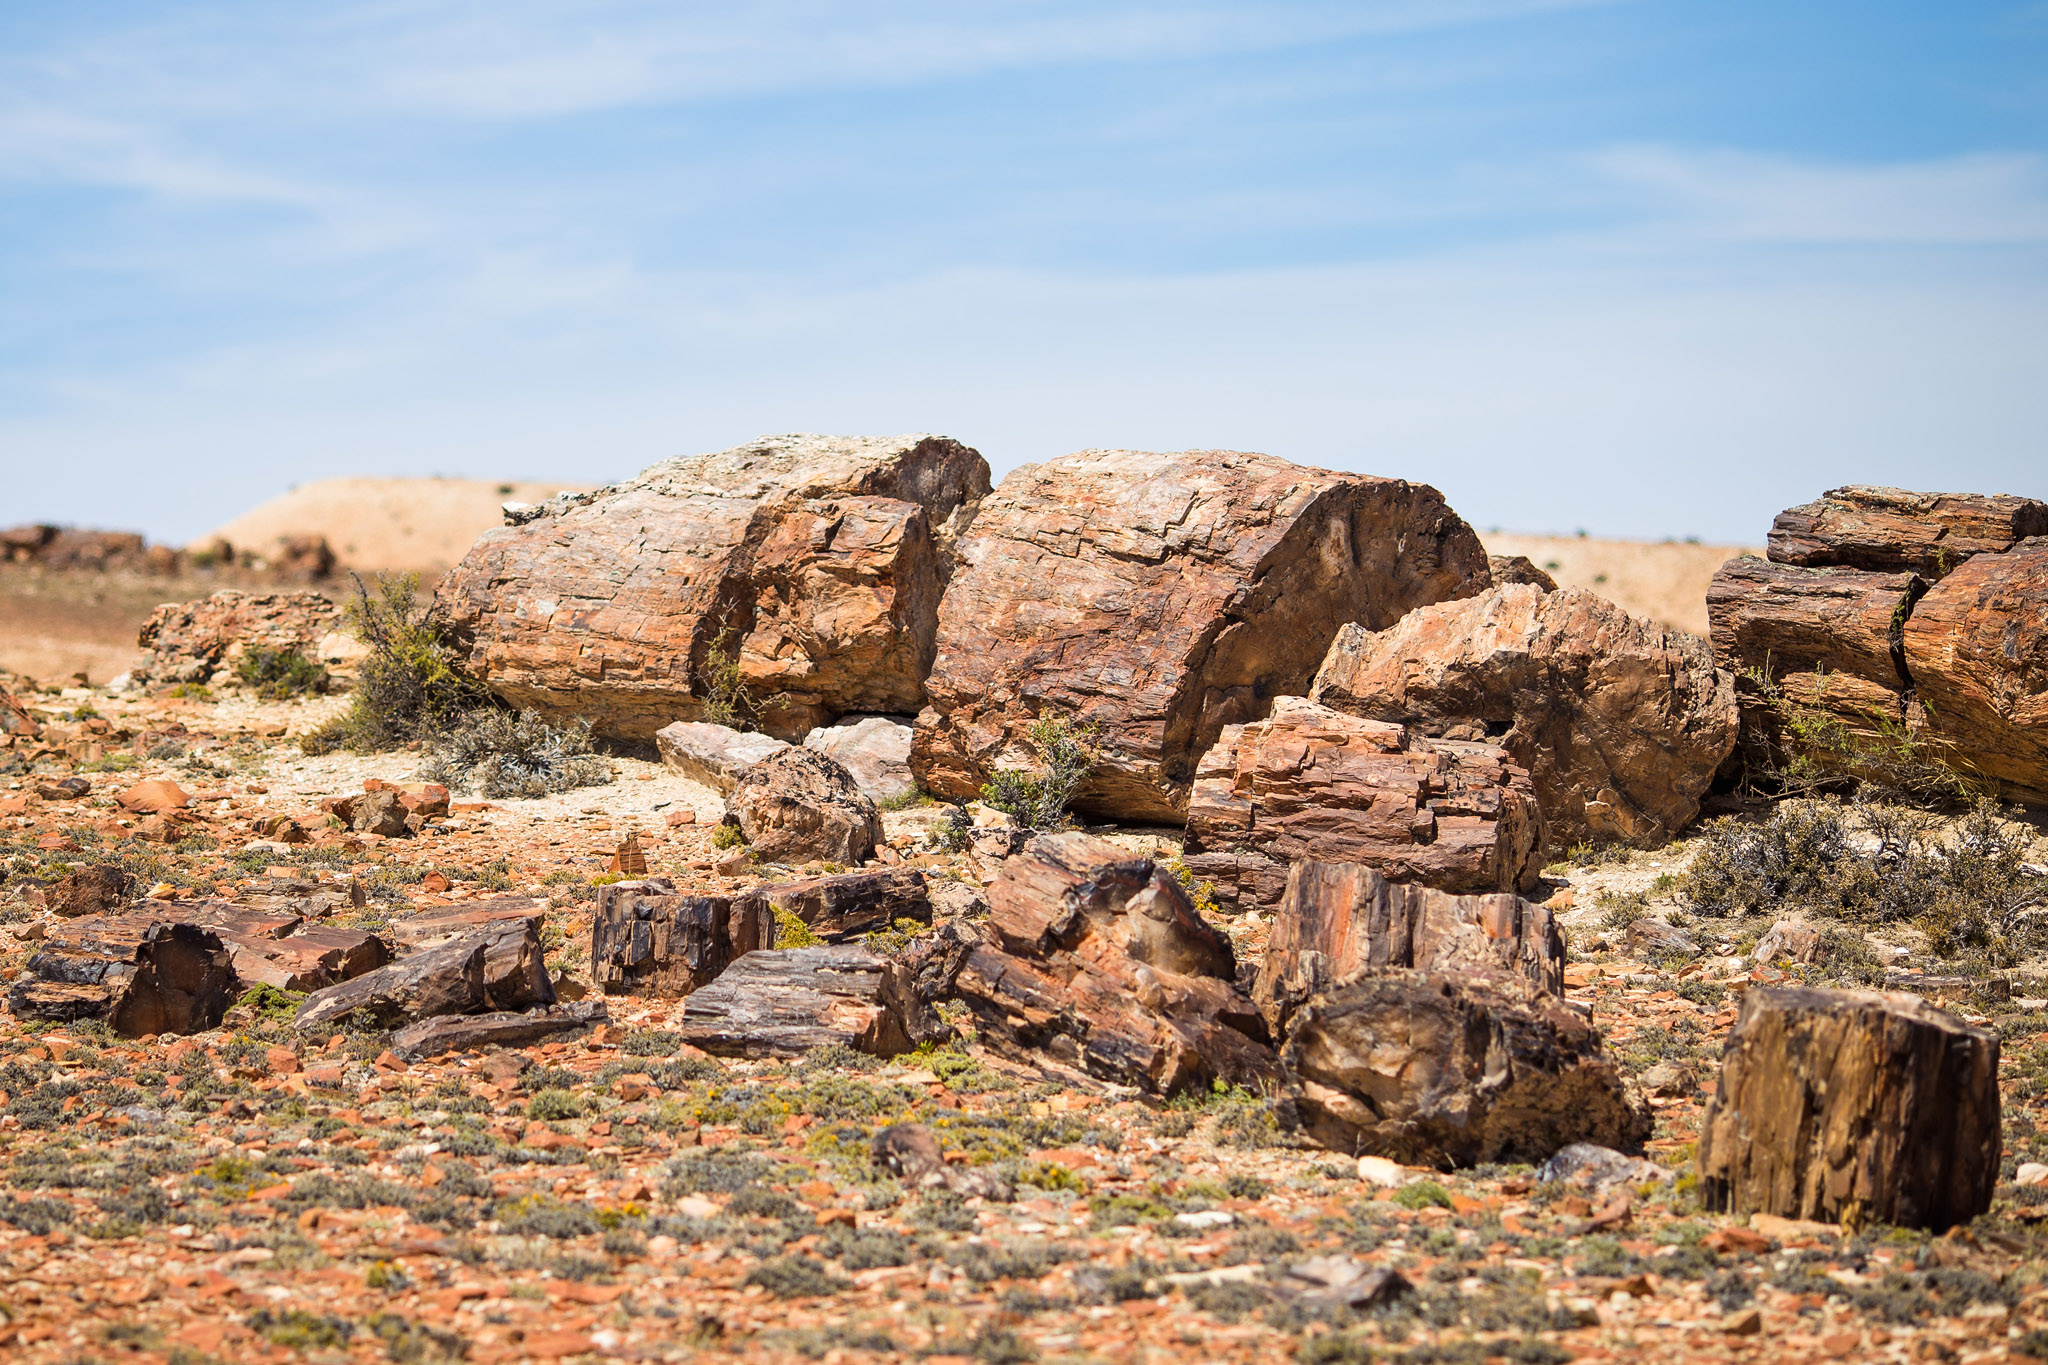 wedding-travellers-argentina-coast-petrified-forest-jaramillo-bosques-petrificados-fossil-tree-junk